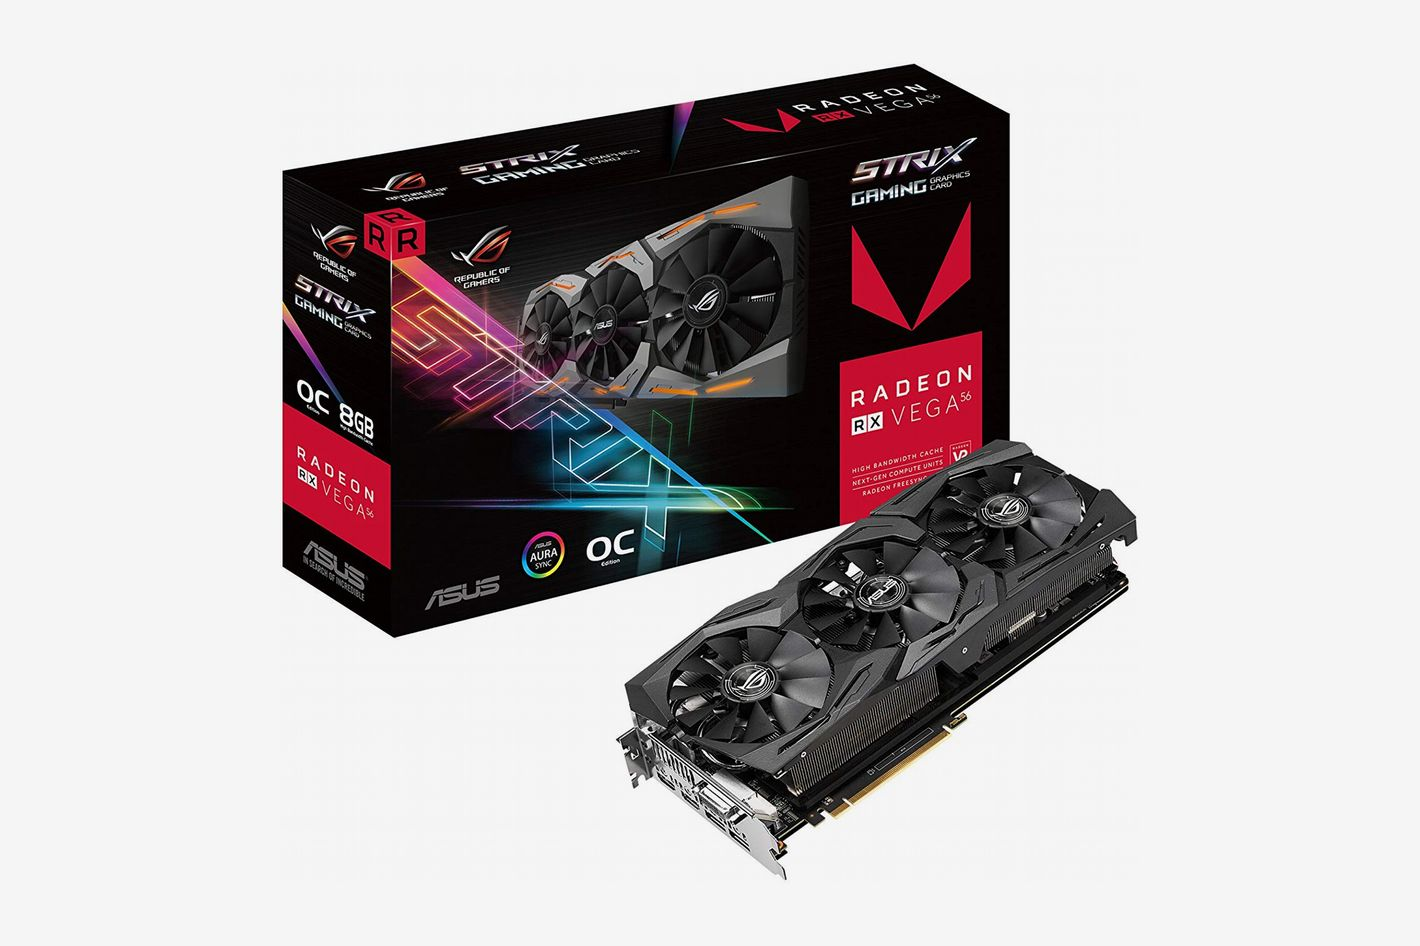 ASUS Strix RX Vega 8GB Gaming Graphics Card